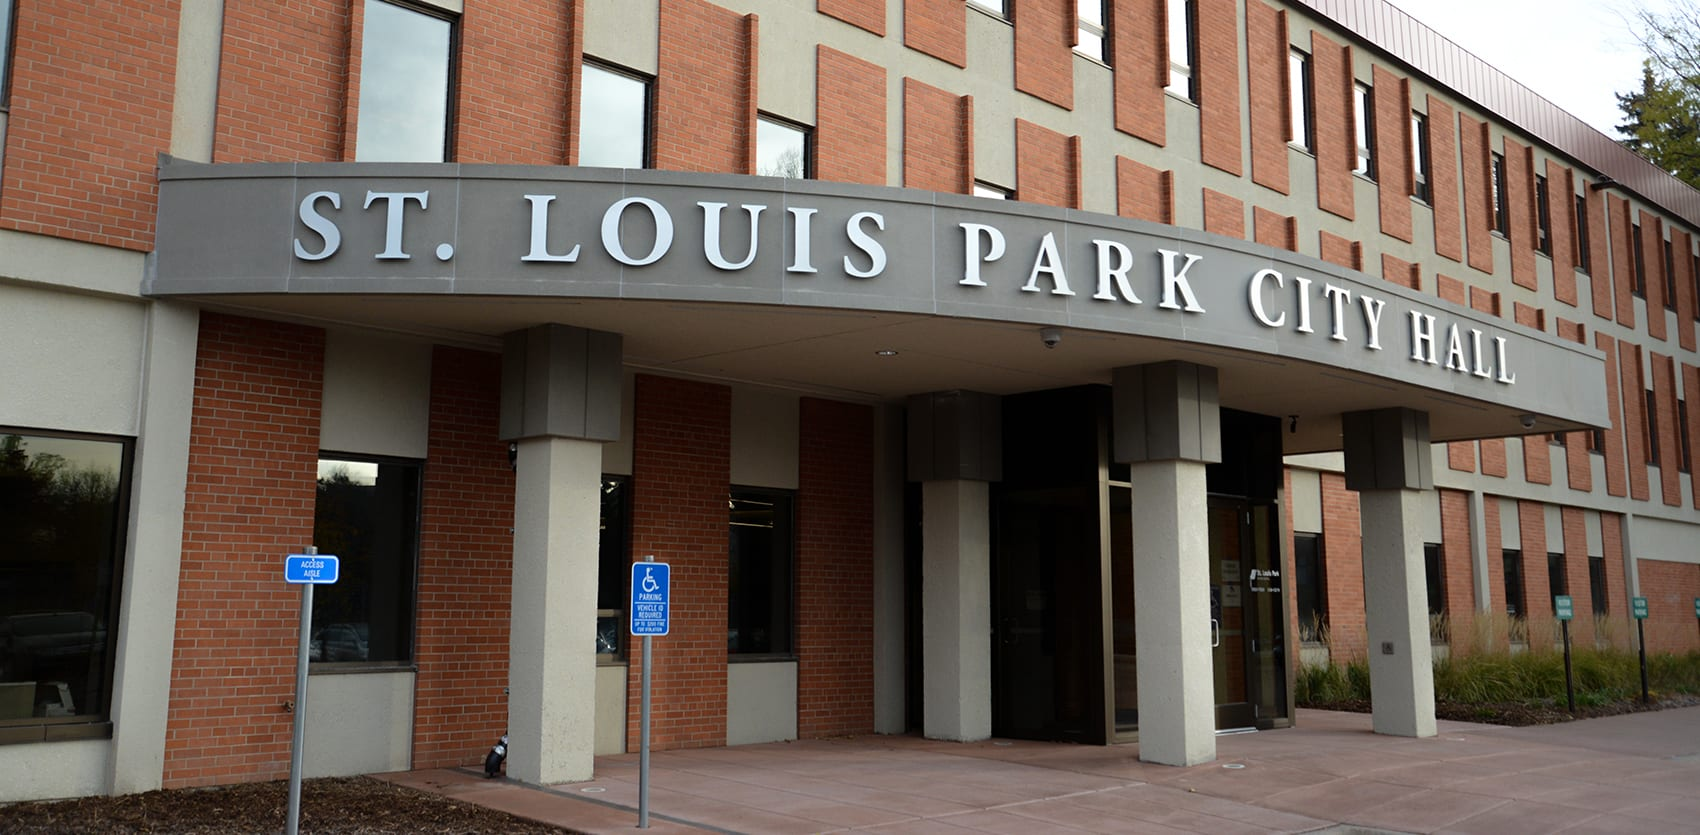 Saint Louis Park City Hall